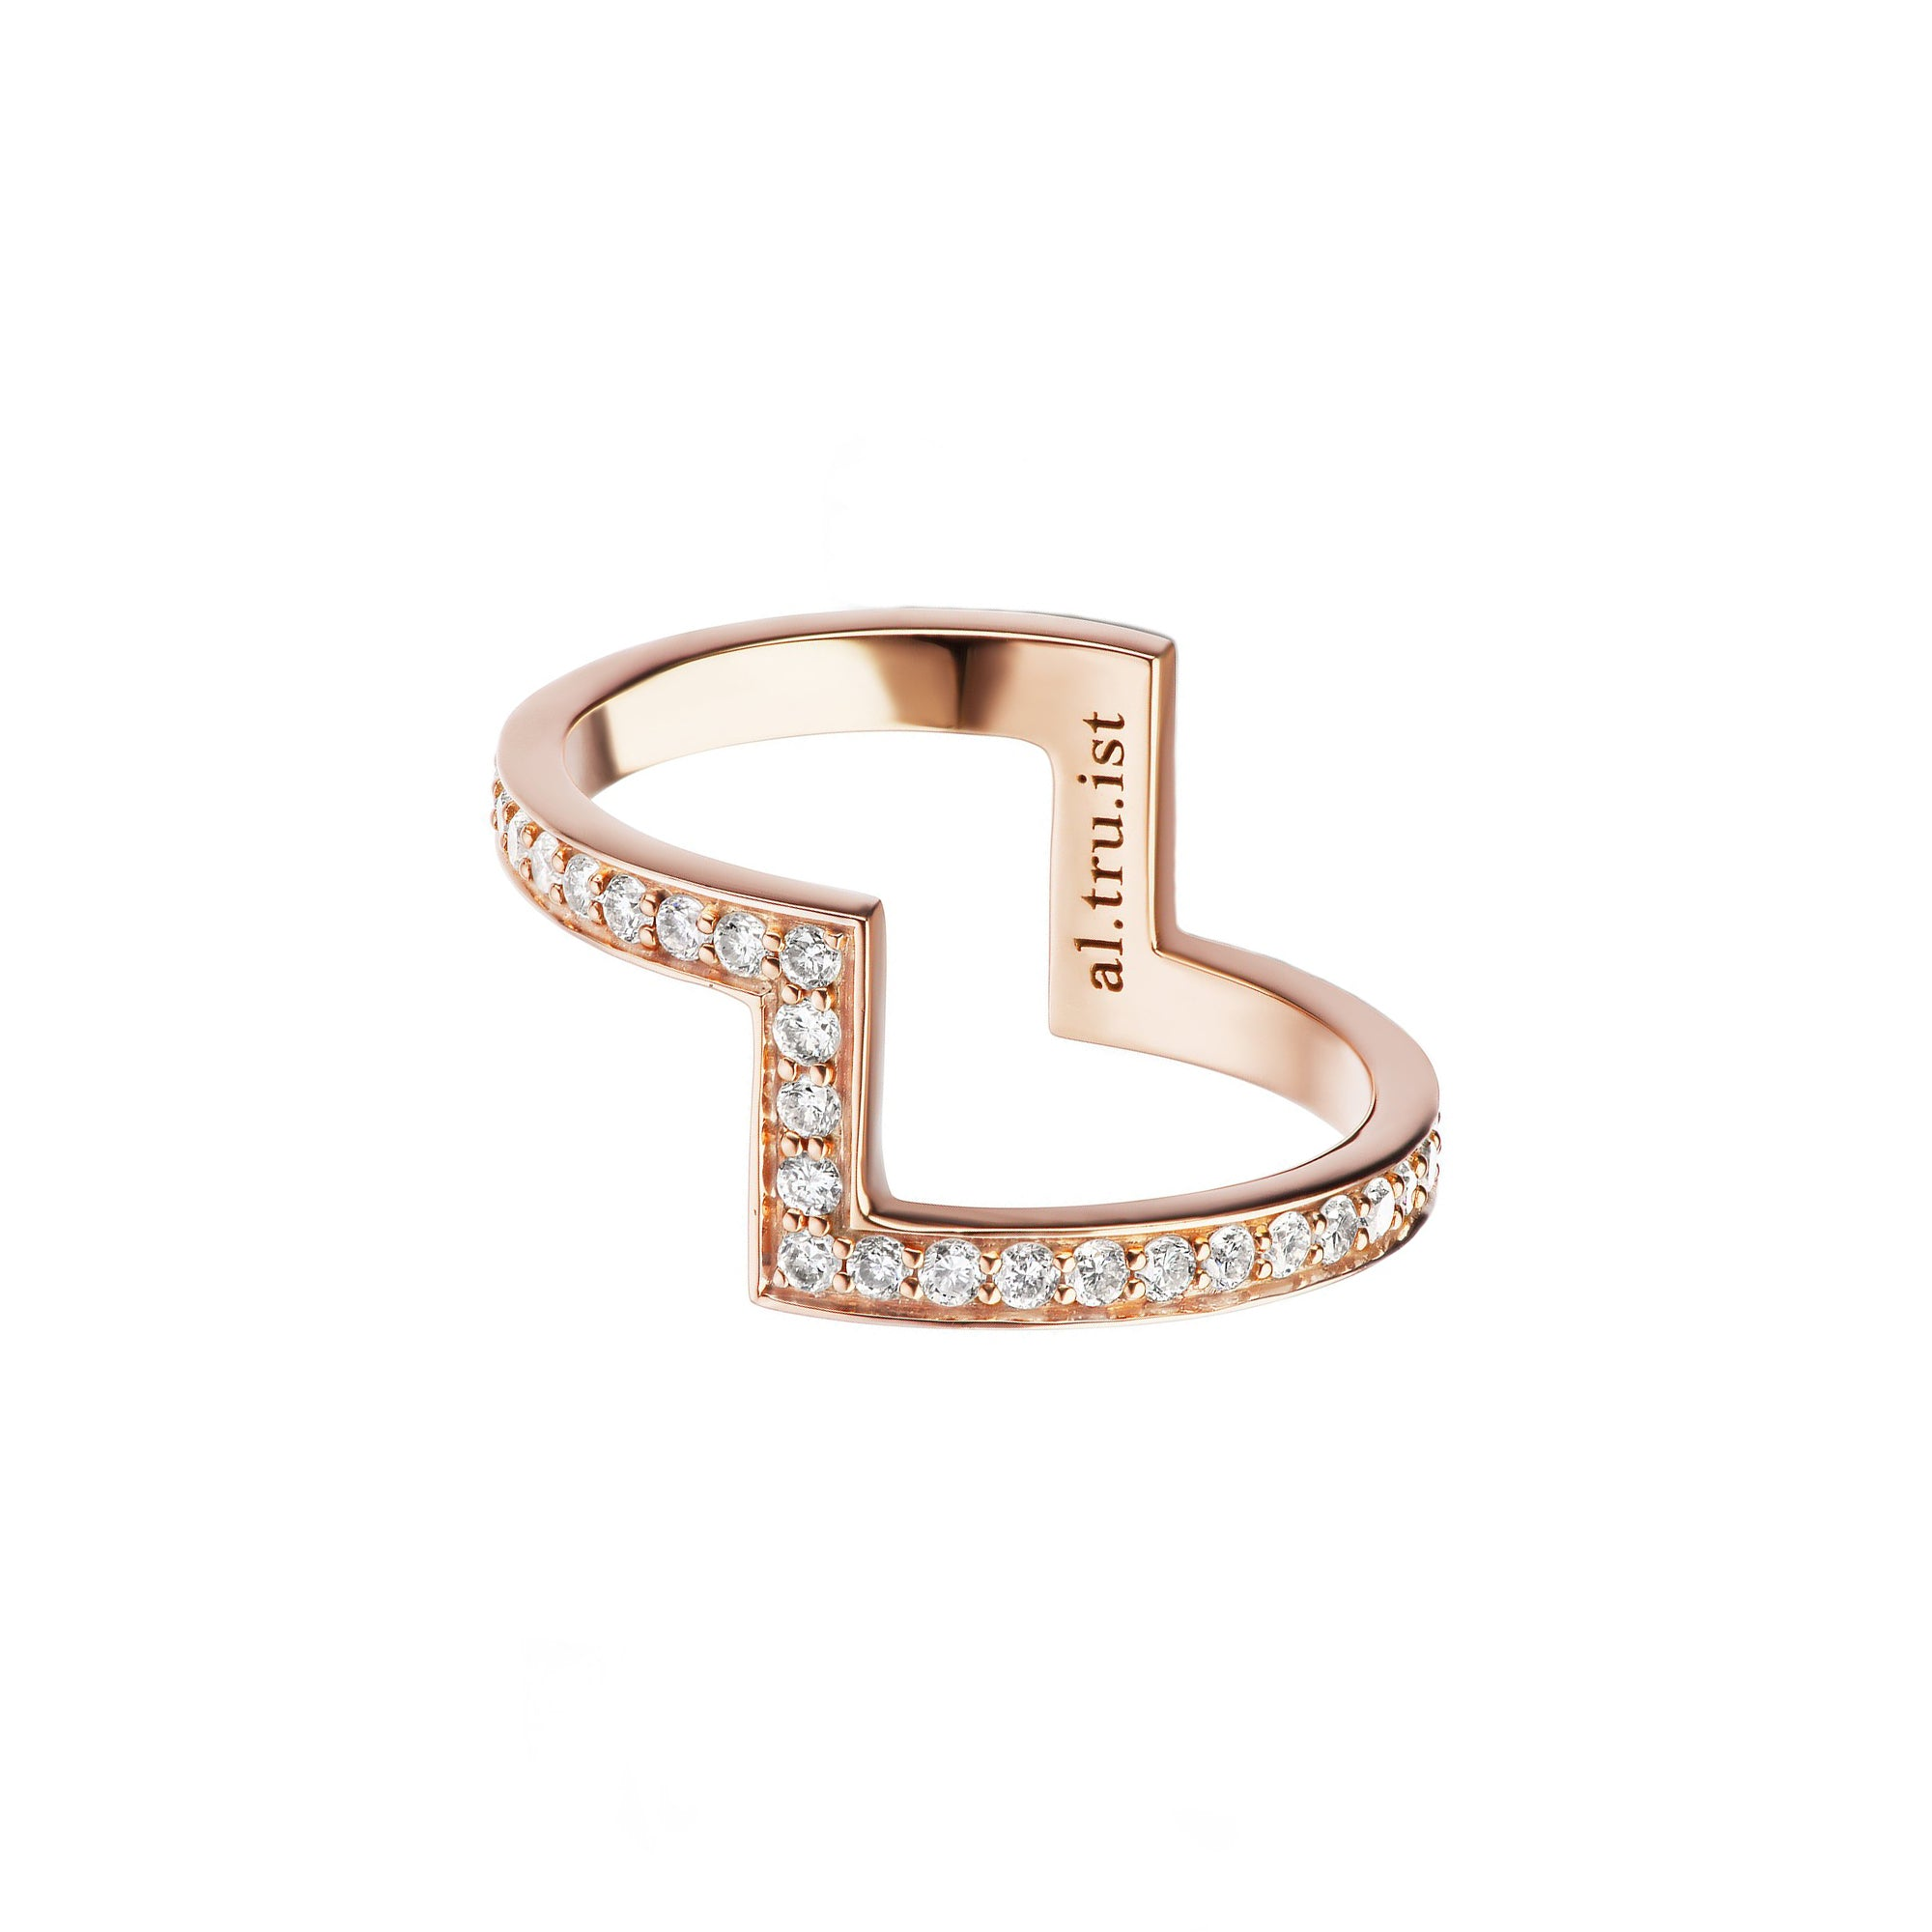 Diamond Detailed Bonaparte Ring by Altruist for Broken English Jewelry